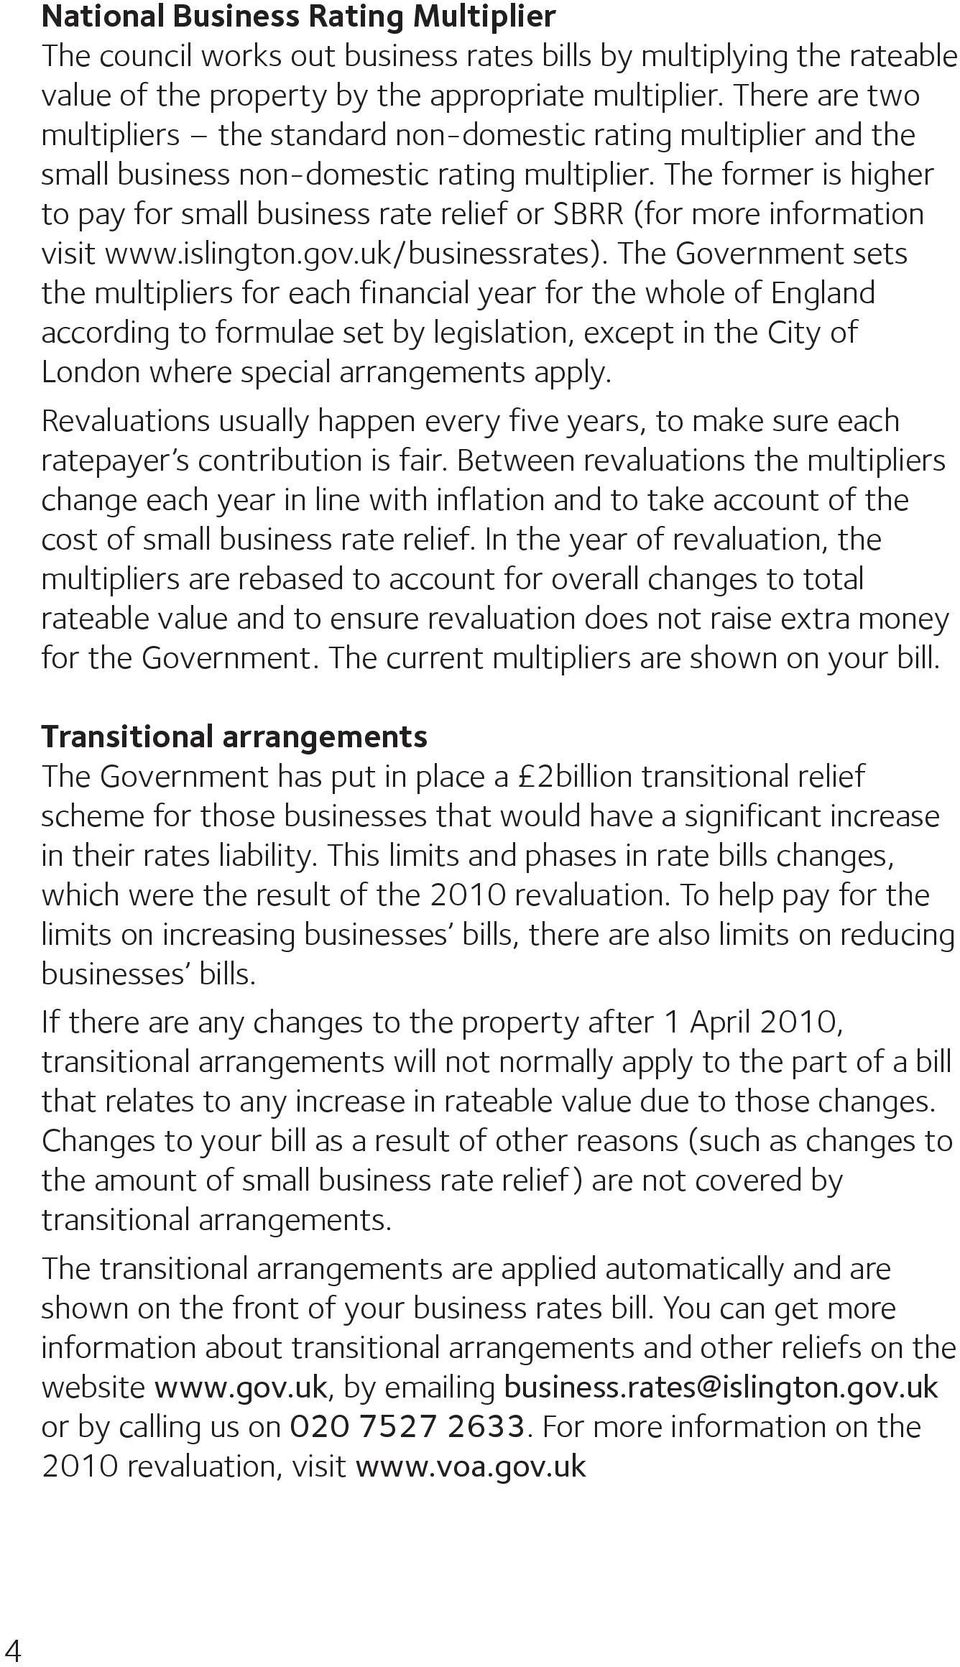 The former is higher to pay for small business rate relief or SBRR (for more information visit www.islington.gov.uk/businessrates).